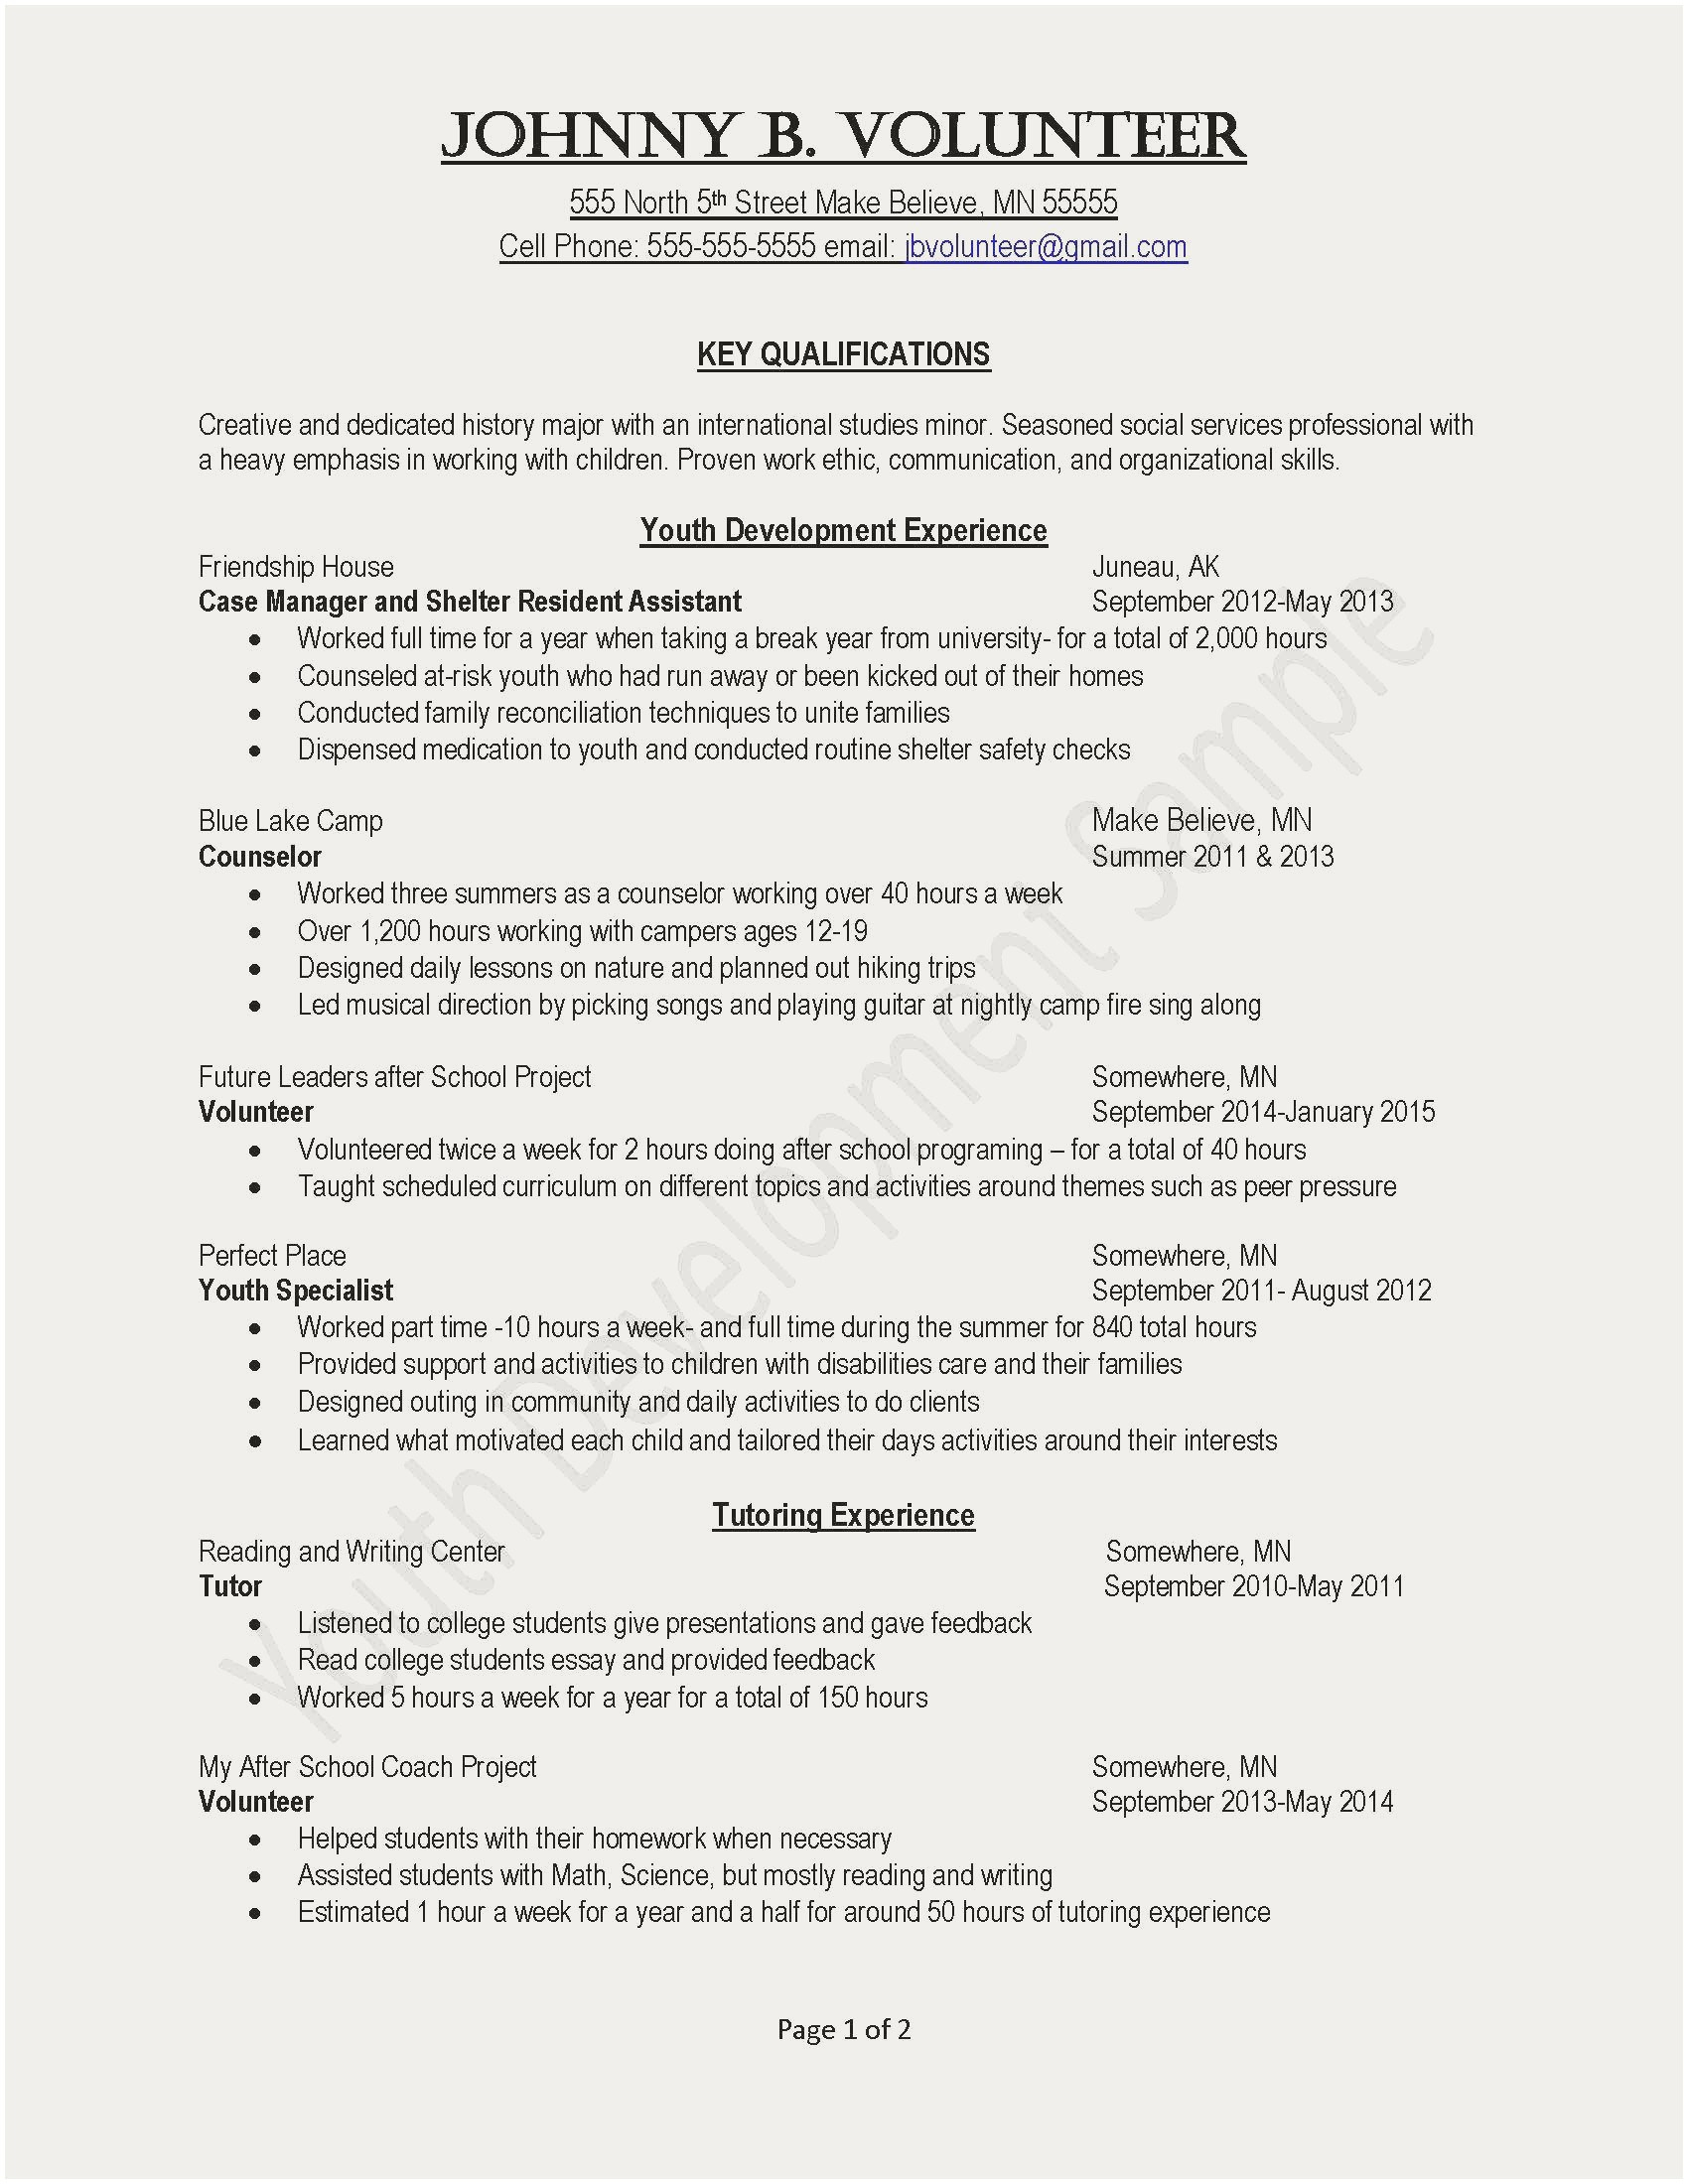 food service resume template example-Resume Examples for Food Service Pharmacy Tech Resume Template Fresh Obama Resume 0d 10-r